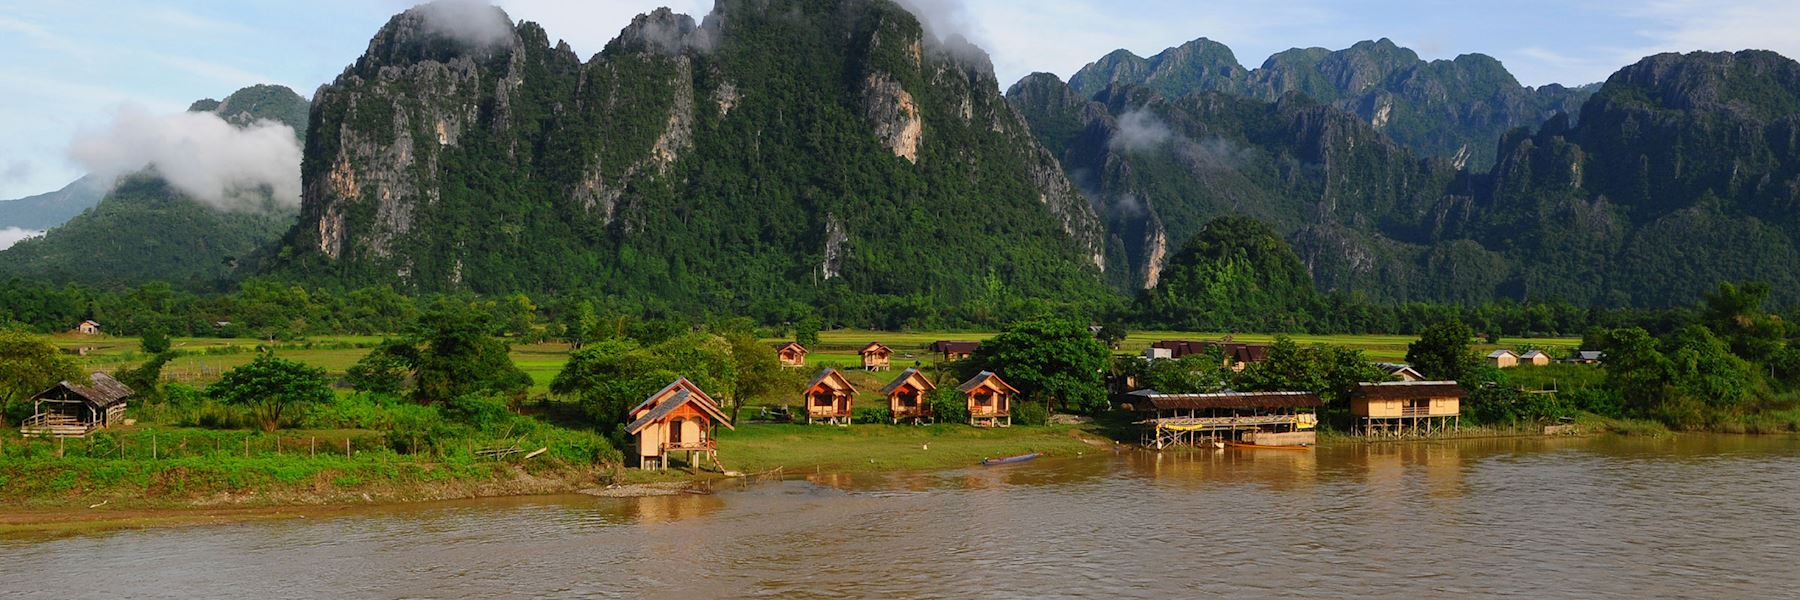 Laos trip ideas